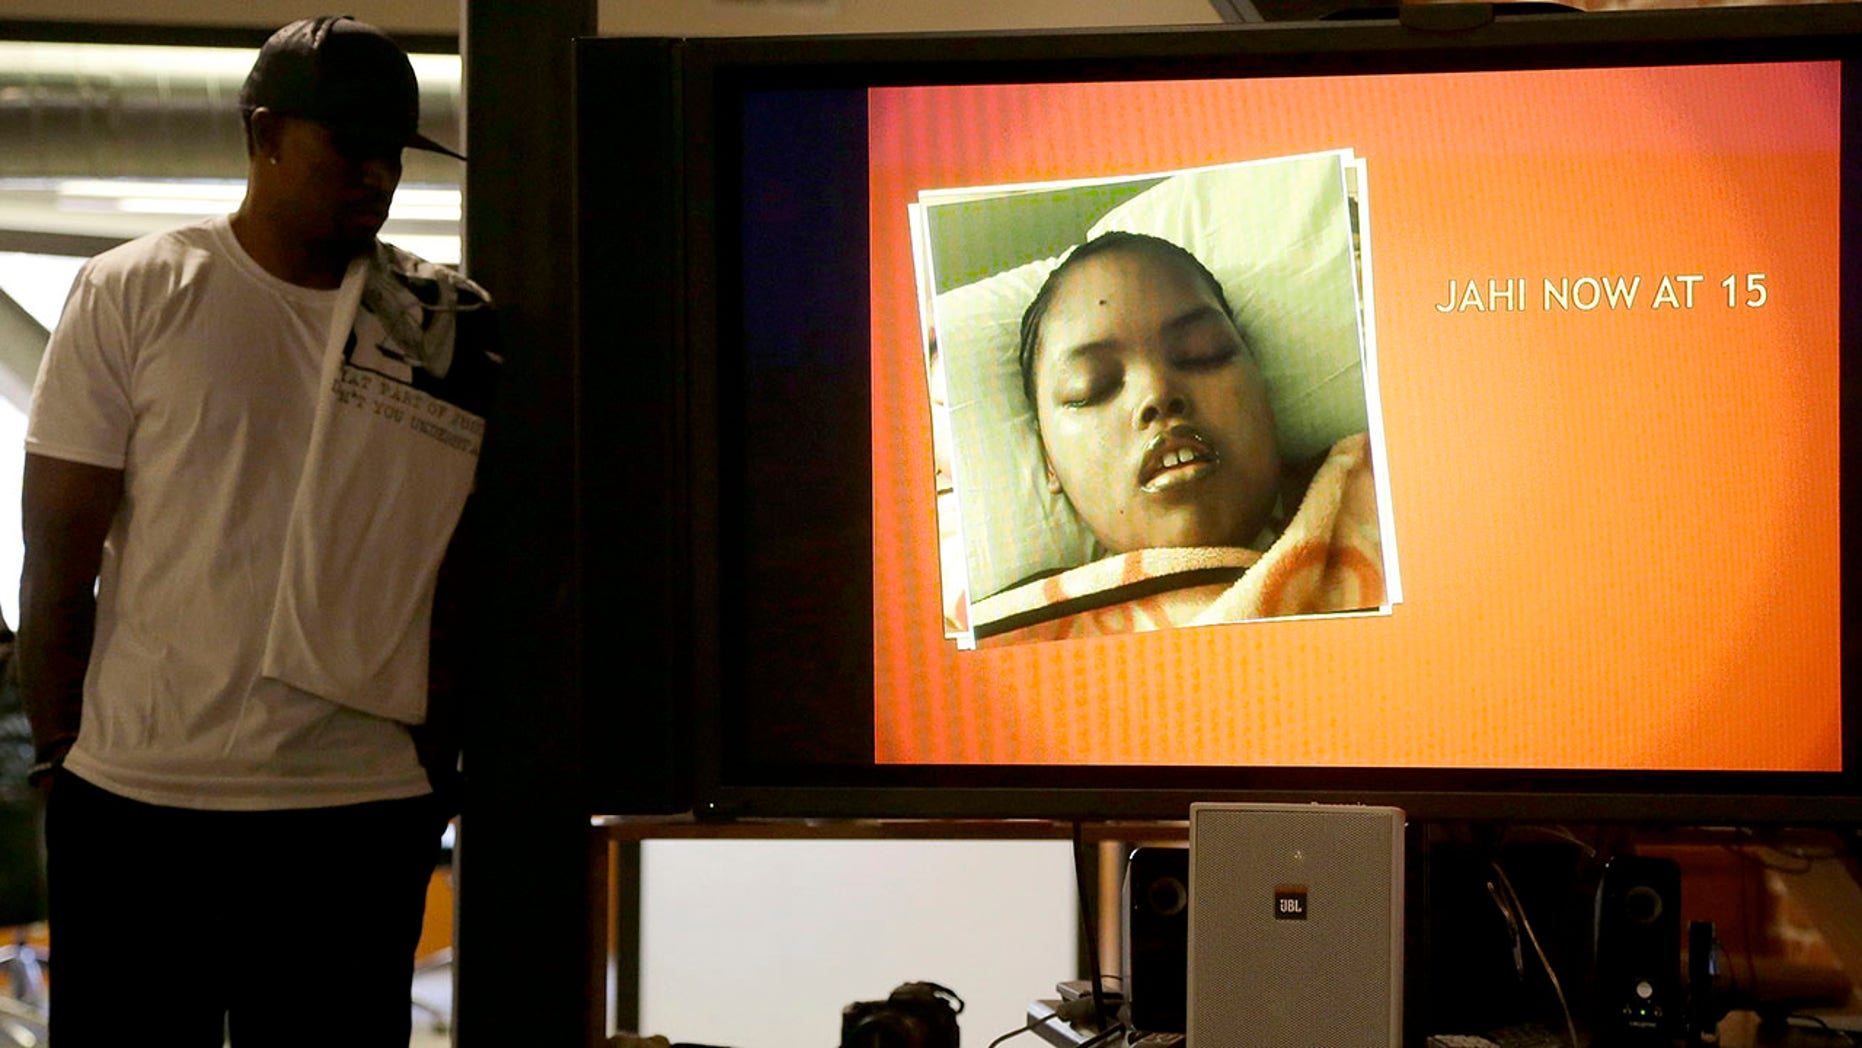 Dec. 23, 2015: In this file photo, a photo of Jahi McMath is shown on a video screen next to her uncle Timothy Whisenton at a news conference in San Francisco.